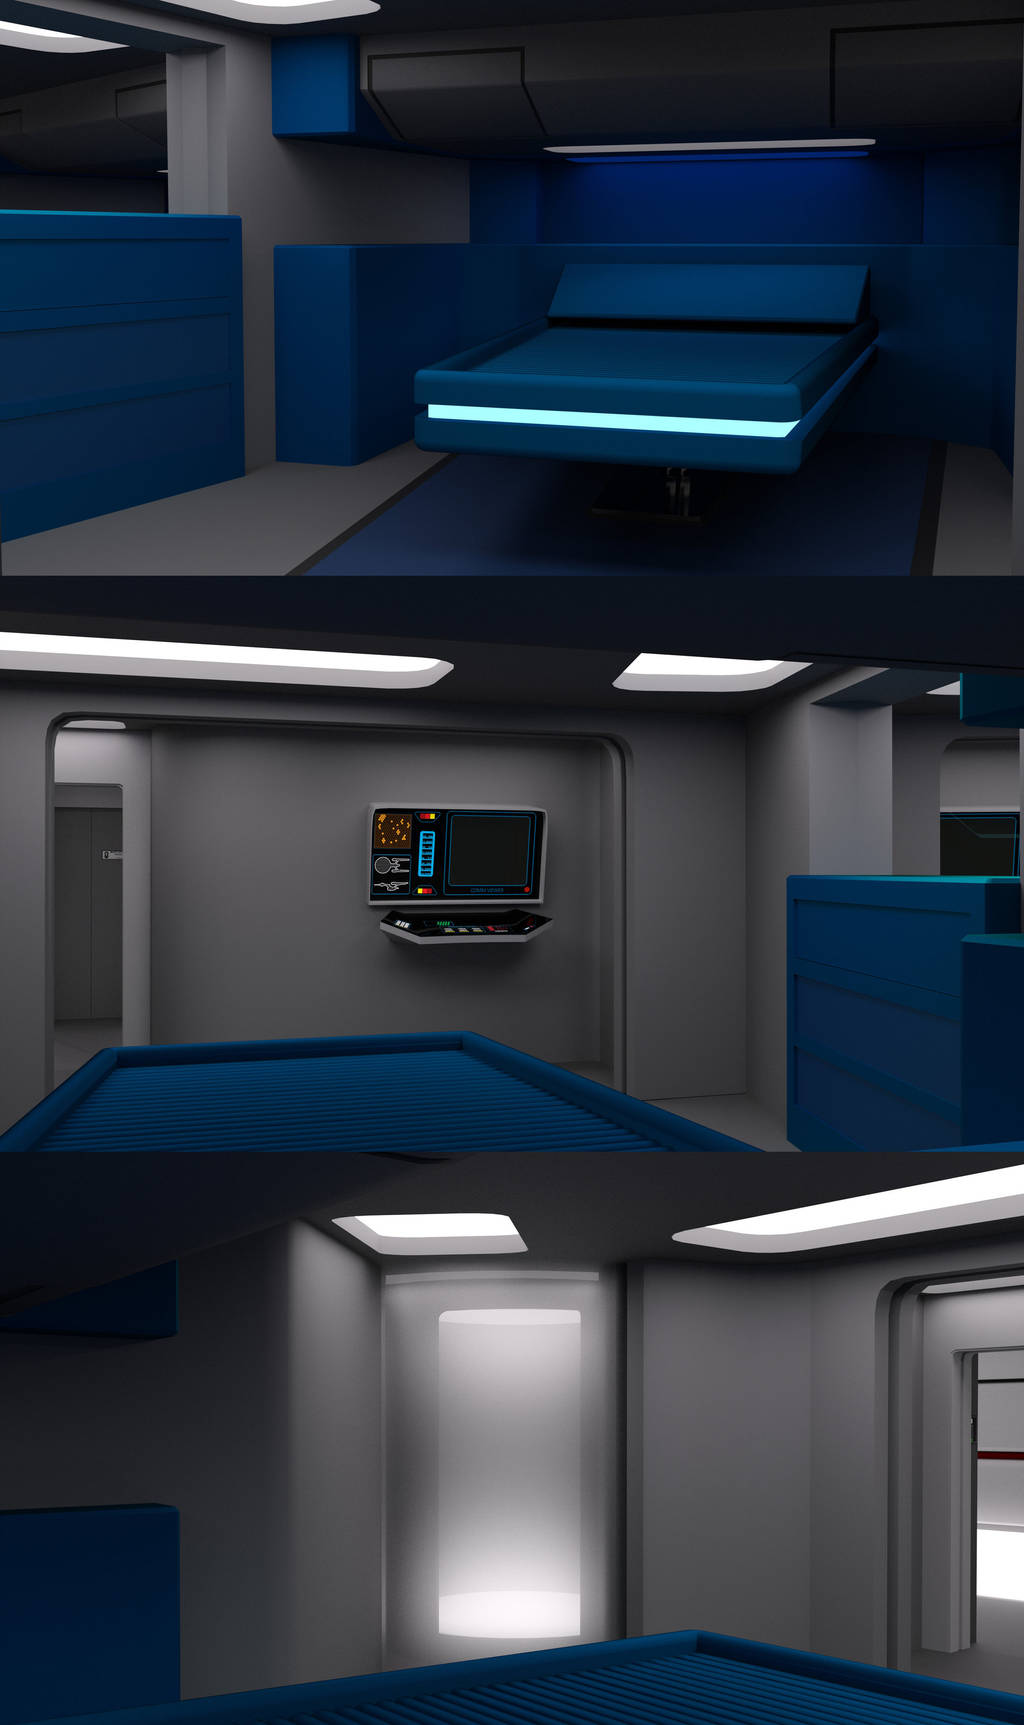 23rd_century_junior_officers_quarters_unfurnished_by_ashleytinger_dd17f34-fullview.jpg